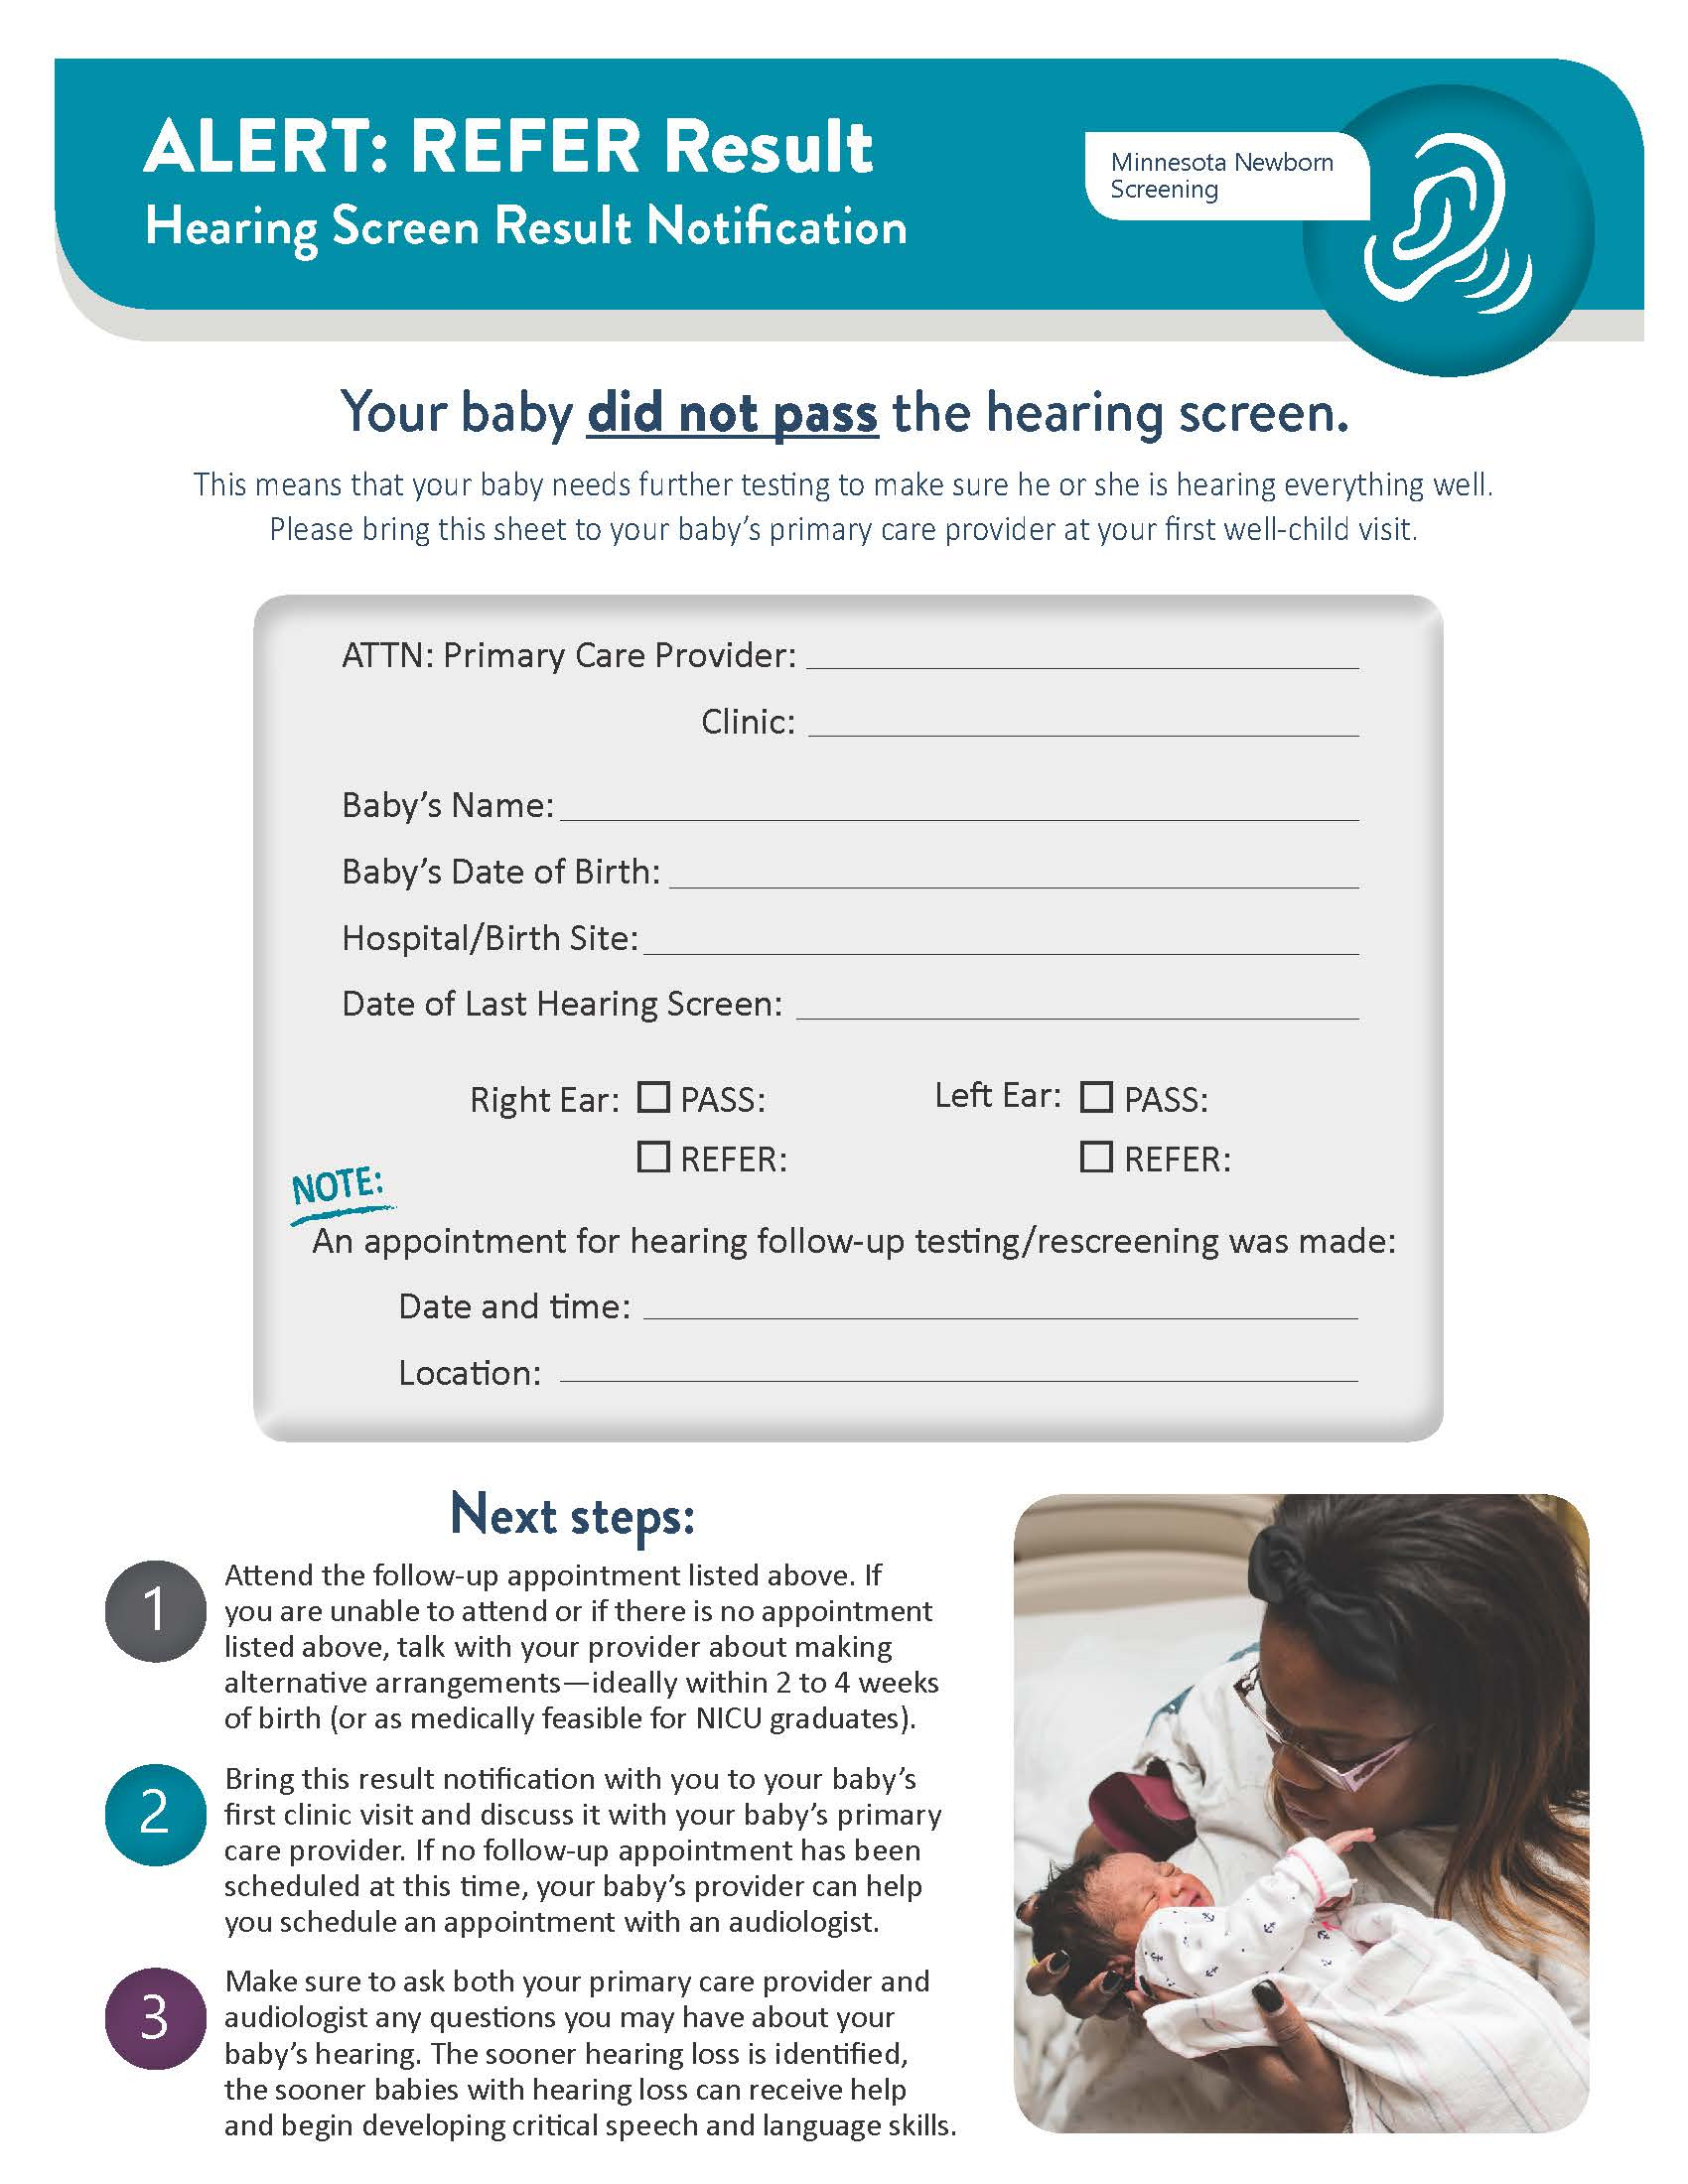 Newborn Hearing Screening Refer Result Notification